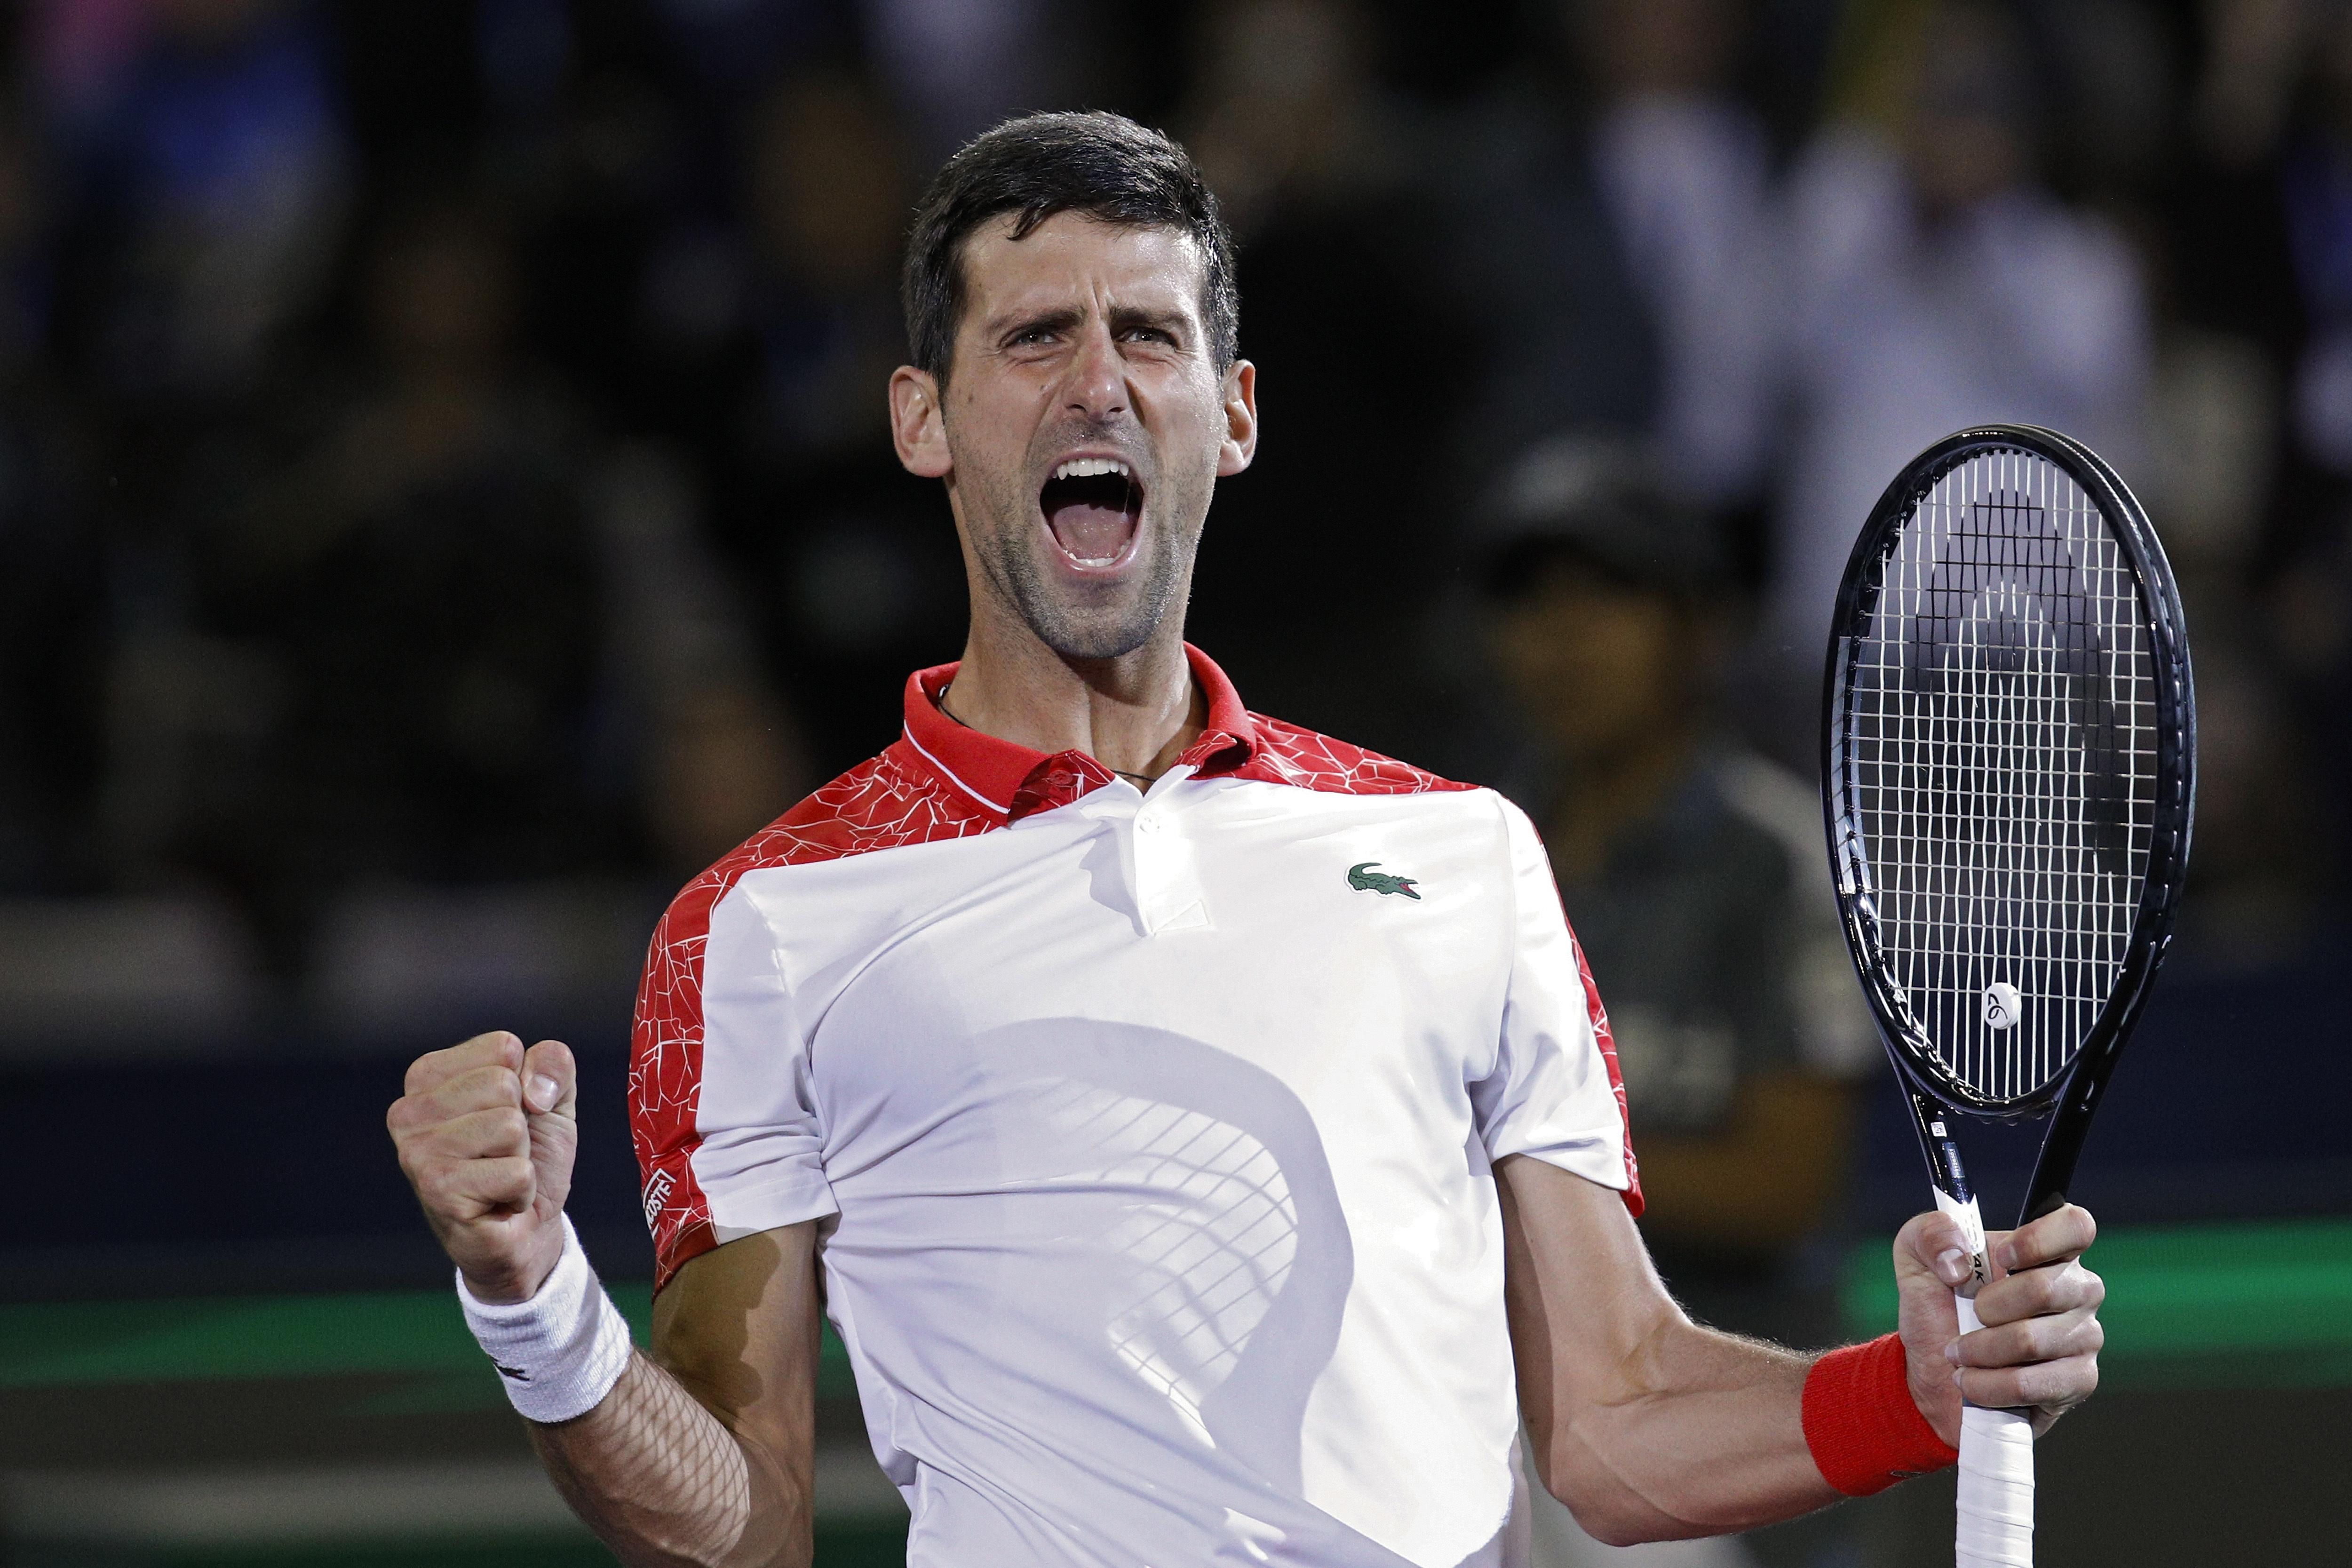 Djokovic said he did not want to to involve himself in 'political exchange'